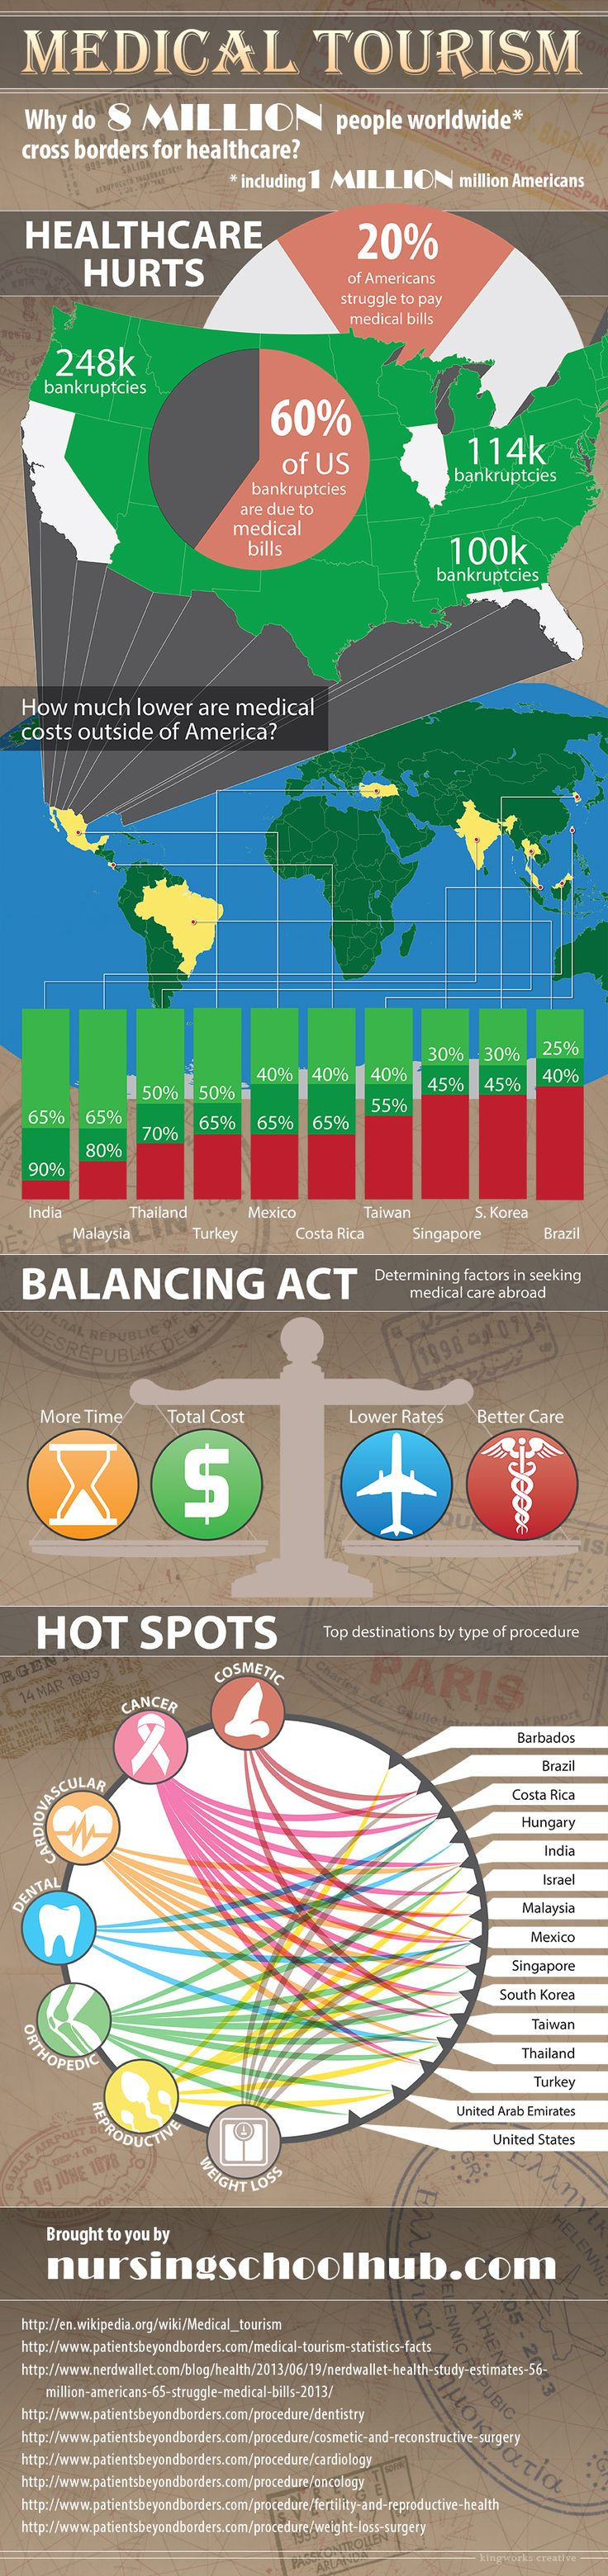 Why medical tourism? Cost effectiveness is one of the many ways SkyMedicus and Medical Tourism can help you out!